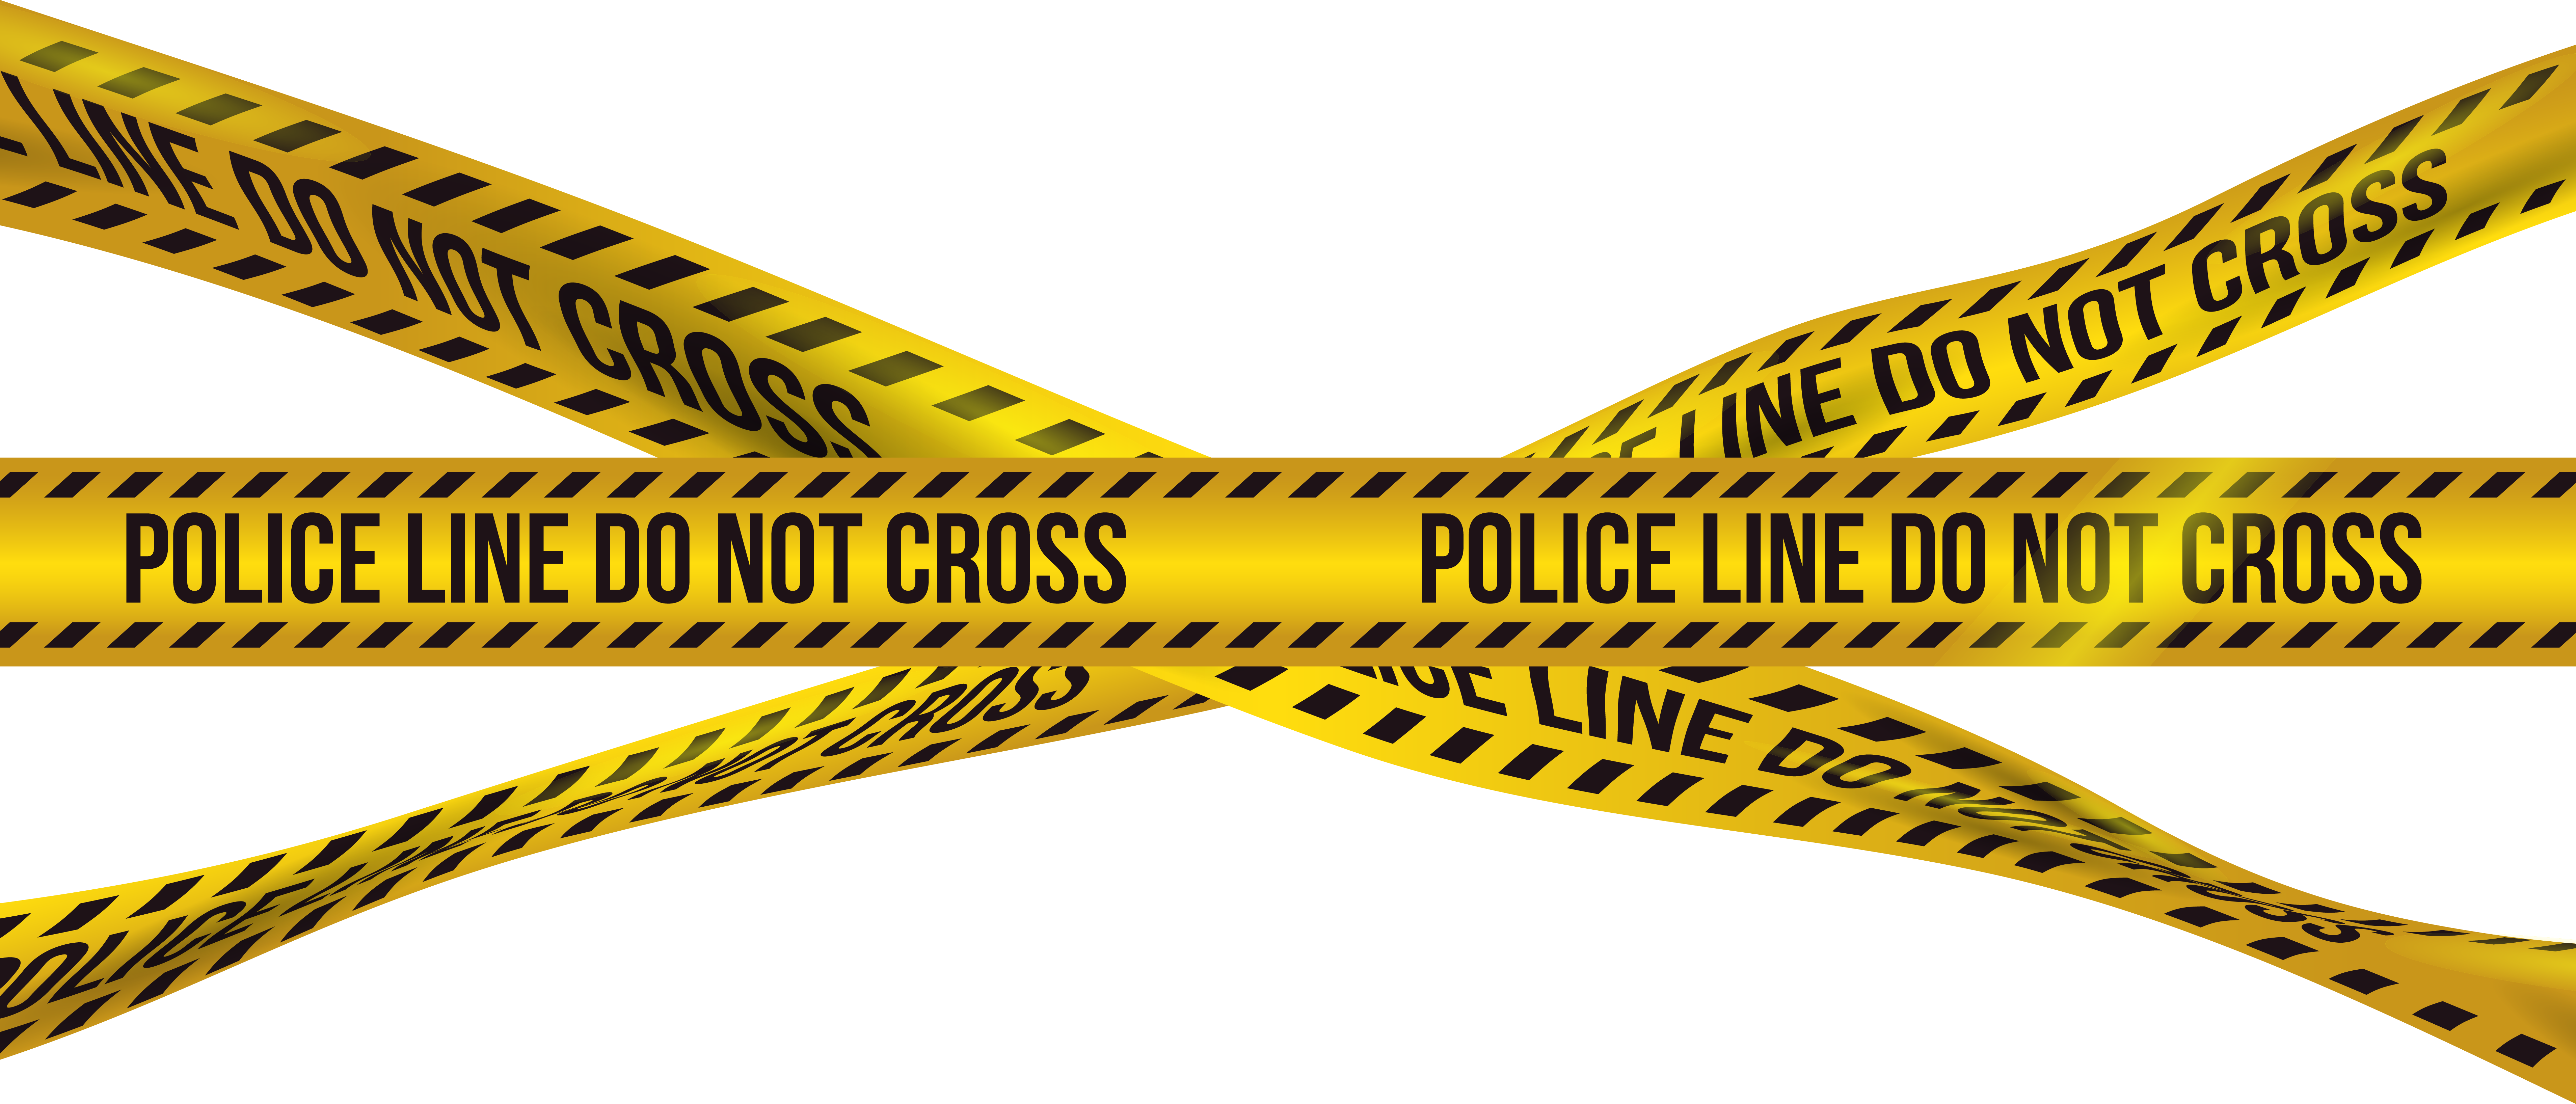 Policeman clipart crime. Police barricade tape png